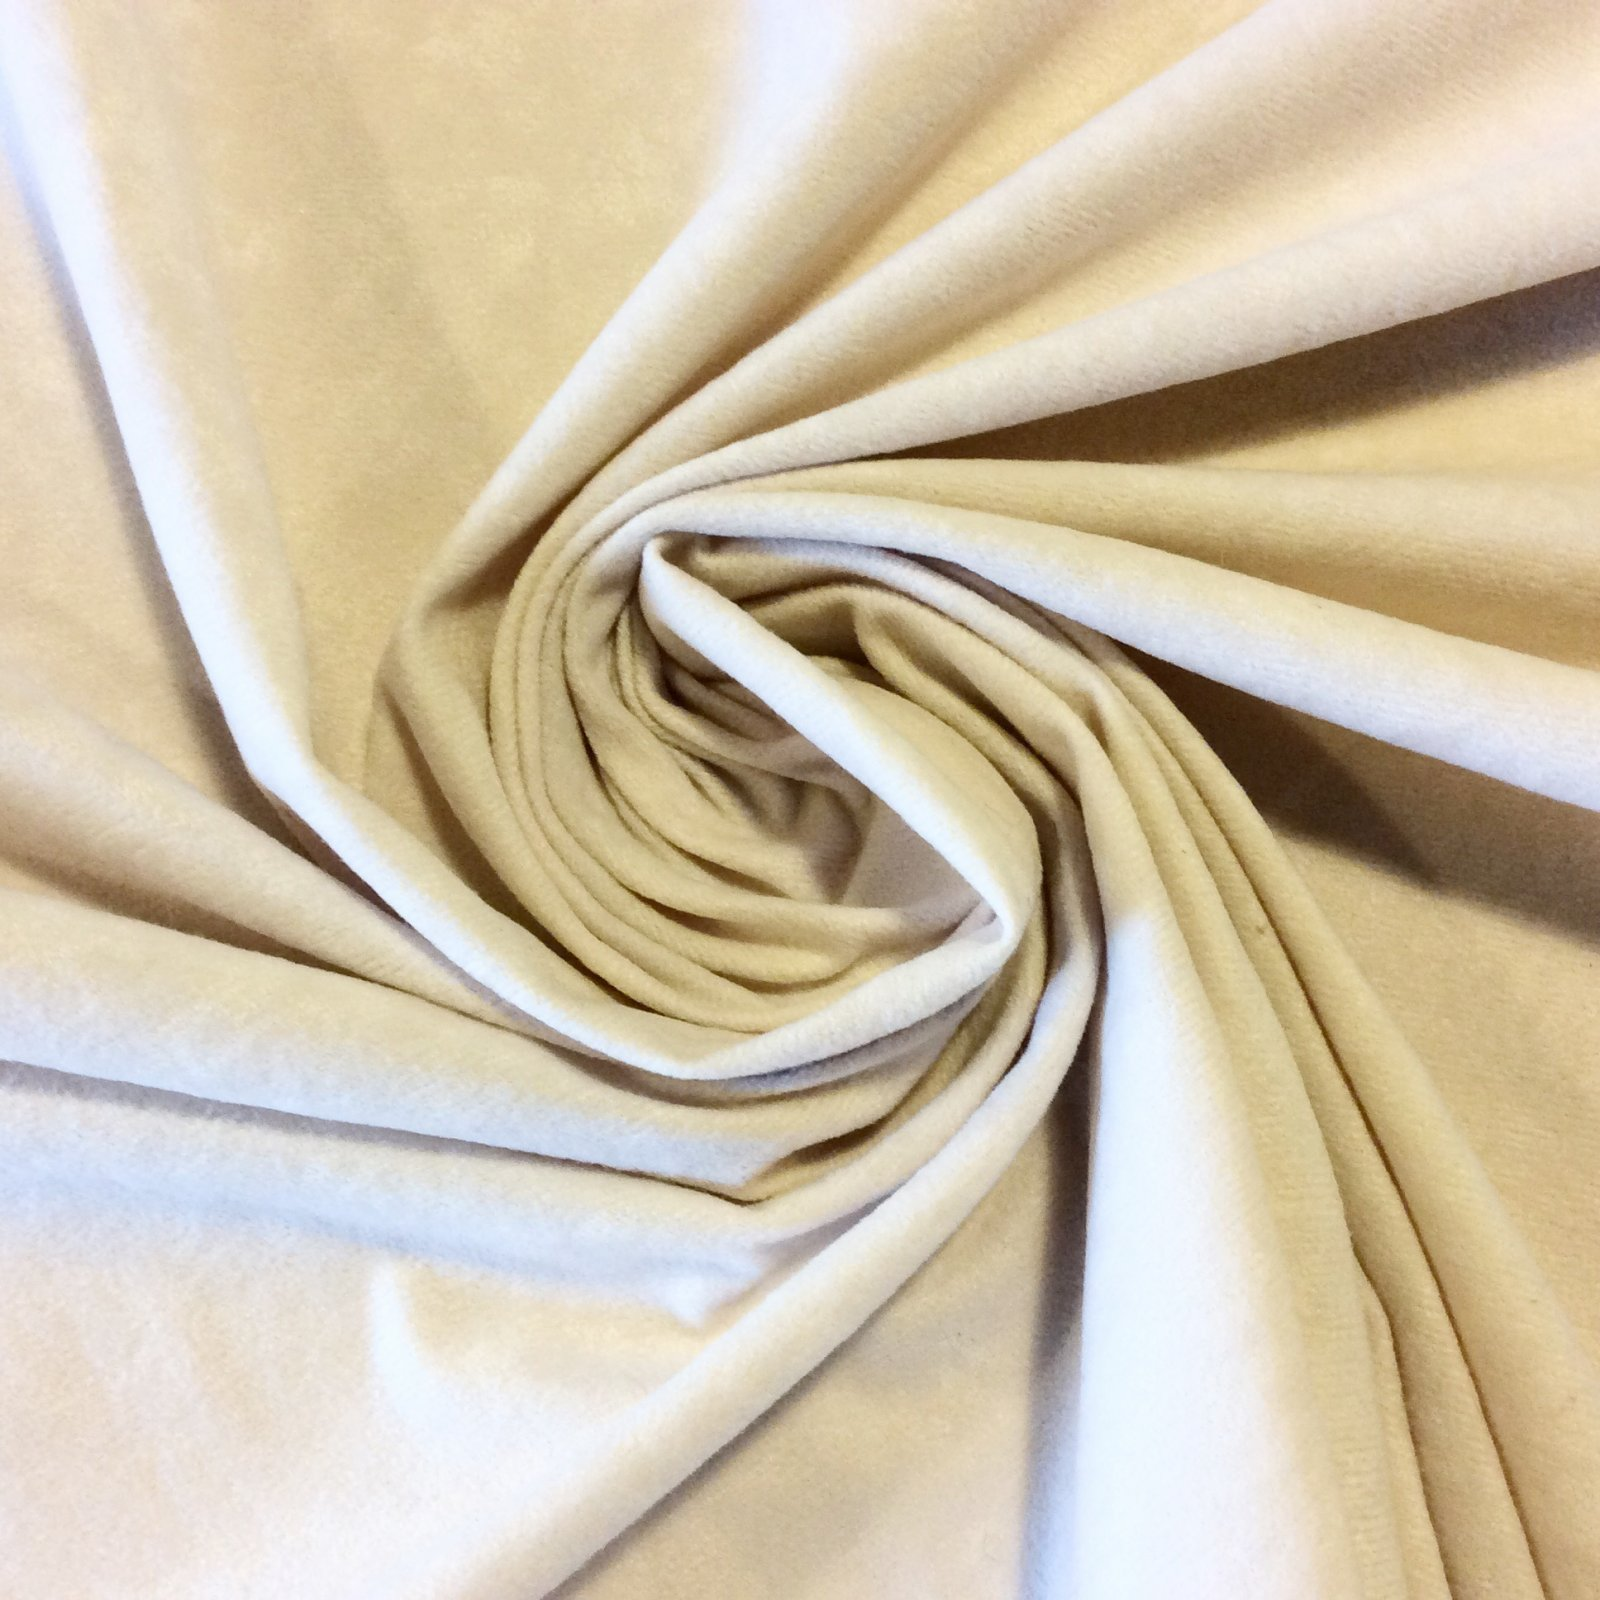 WB36 Ivory Faux Suede Soft Cotton Poly Fabric Upholstery Drapery Apparel wide width CLOSEOUT